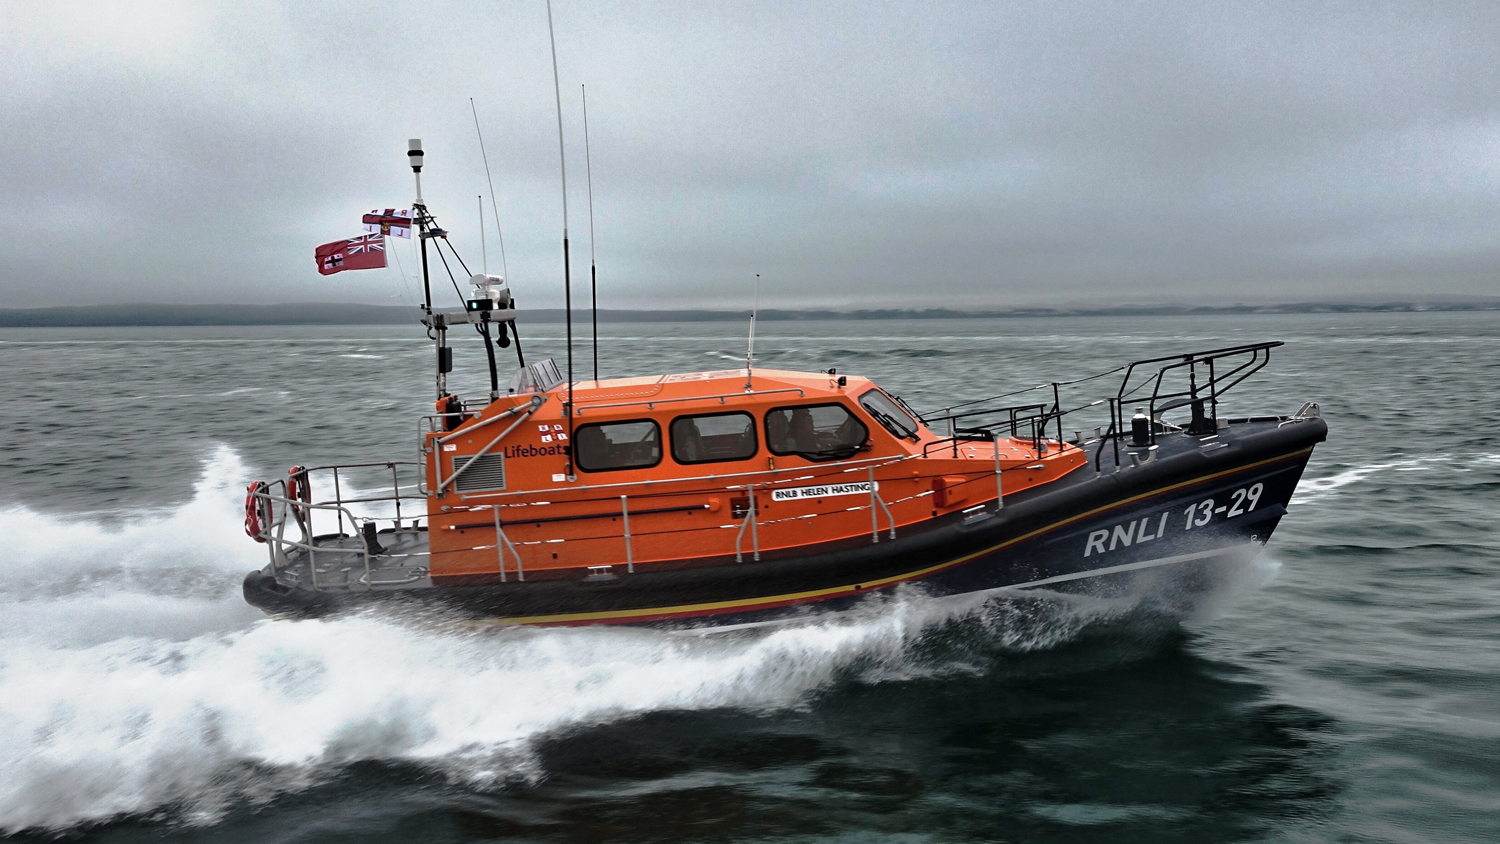 Eyemouth Shannon class lifeboat Helen Hastings 13-29